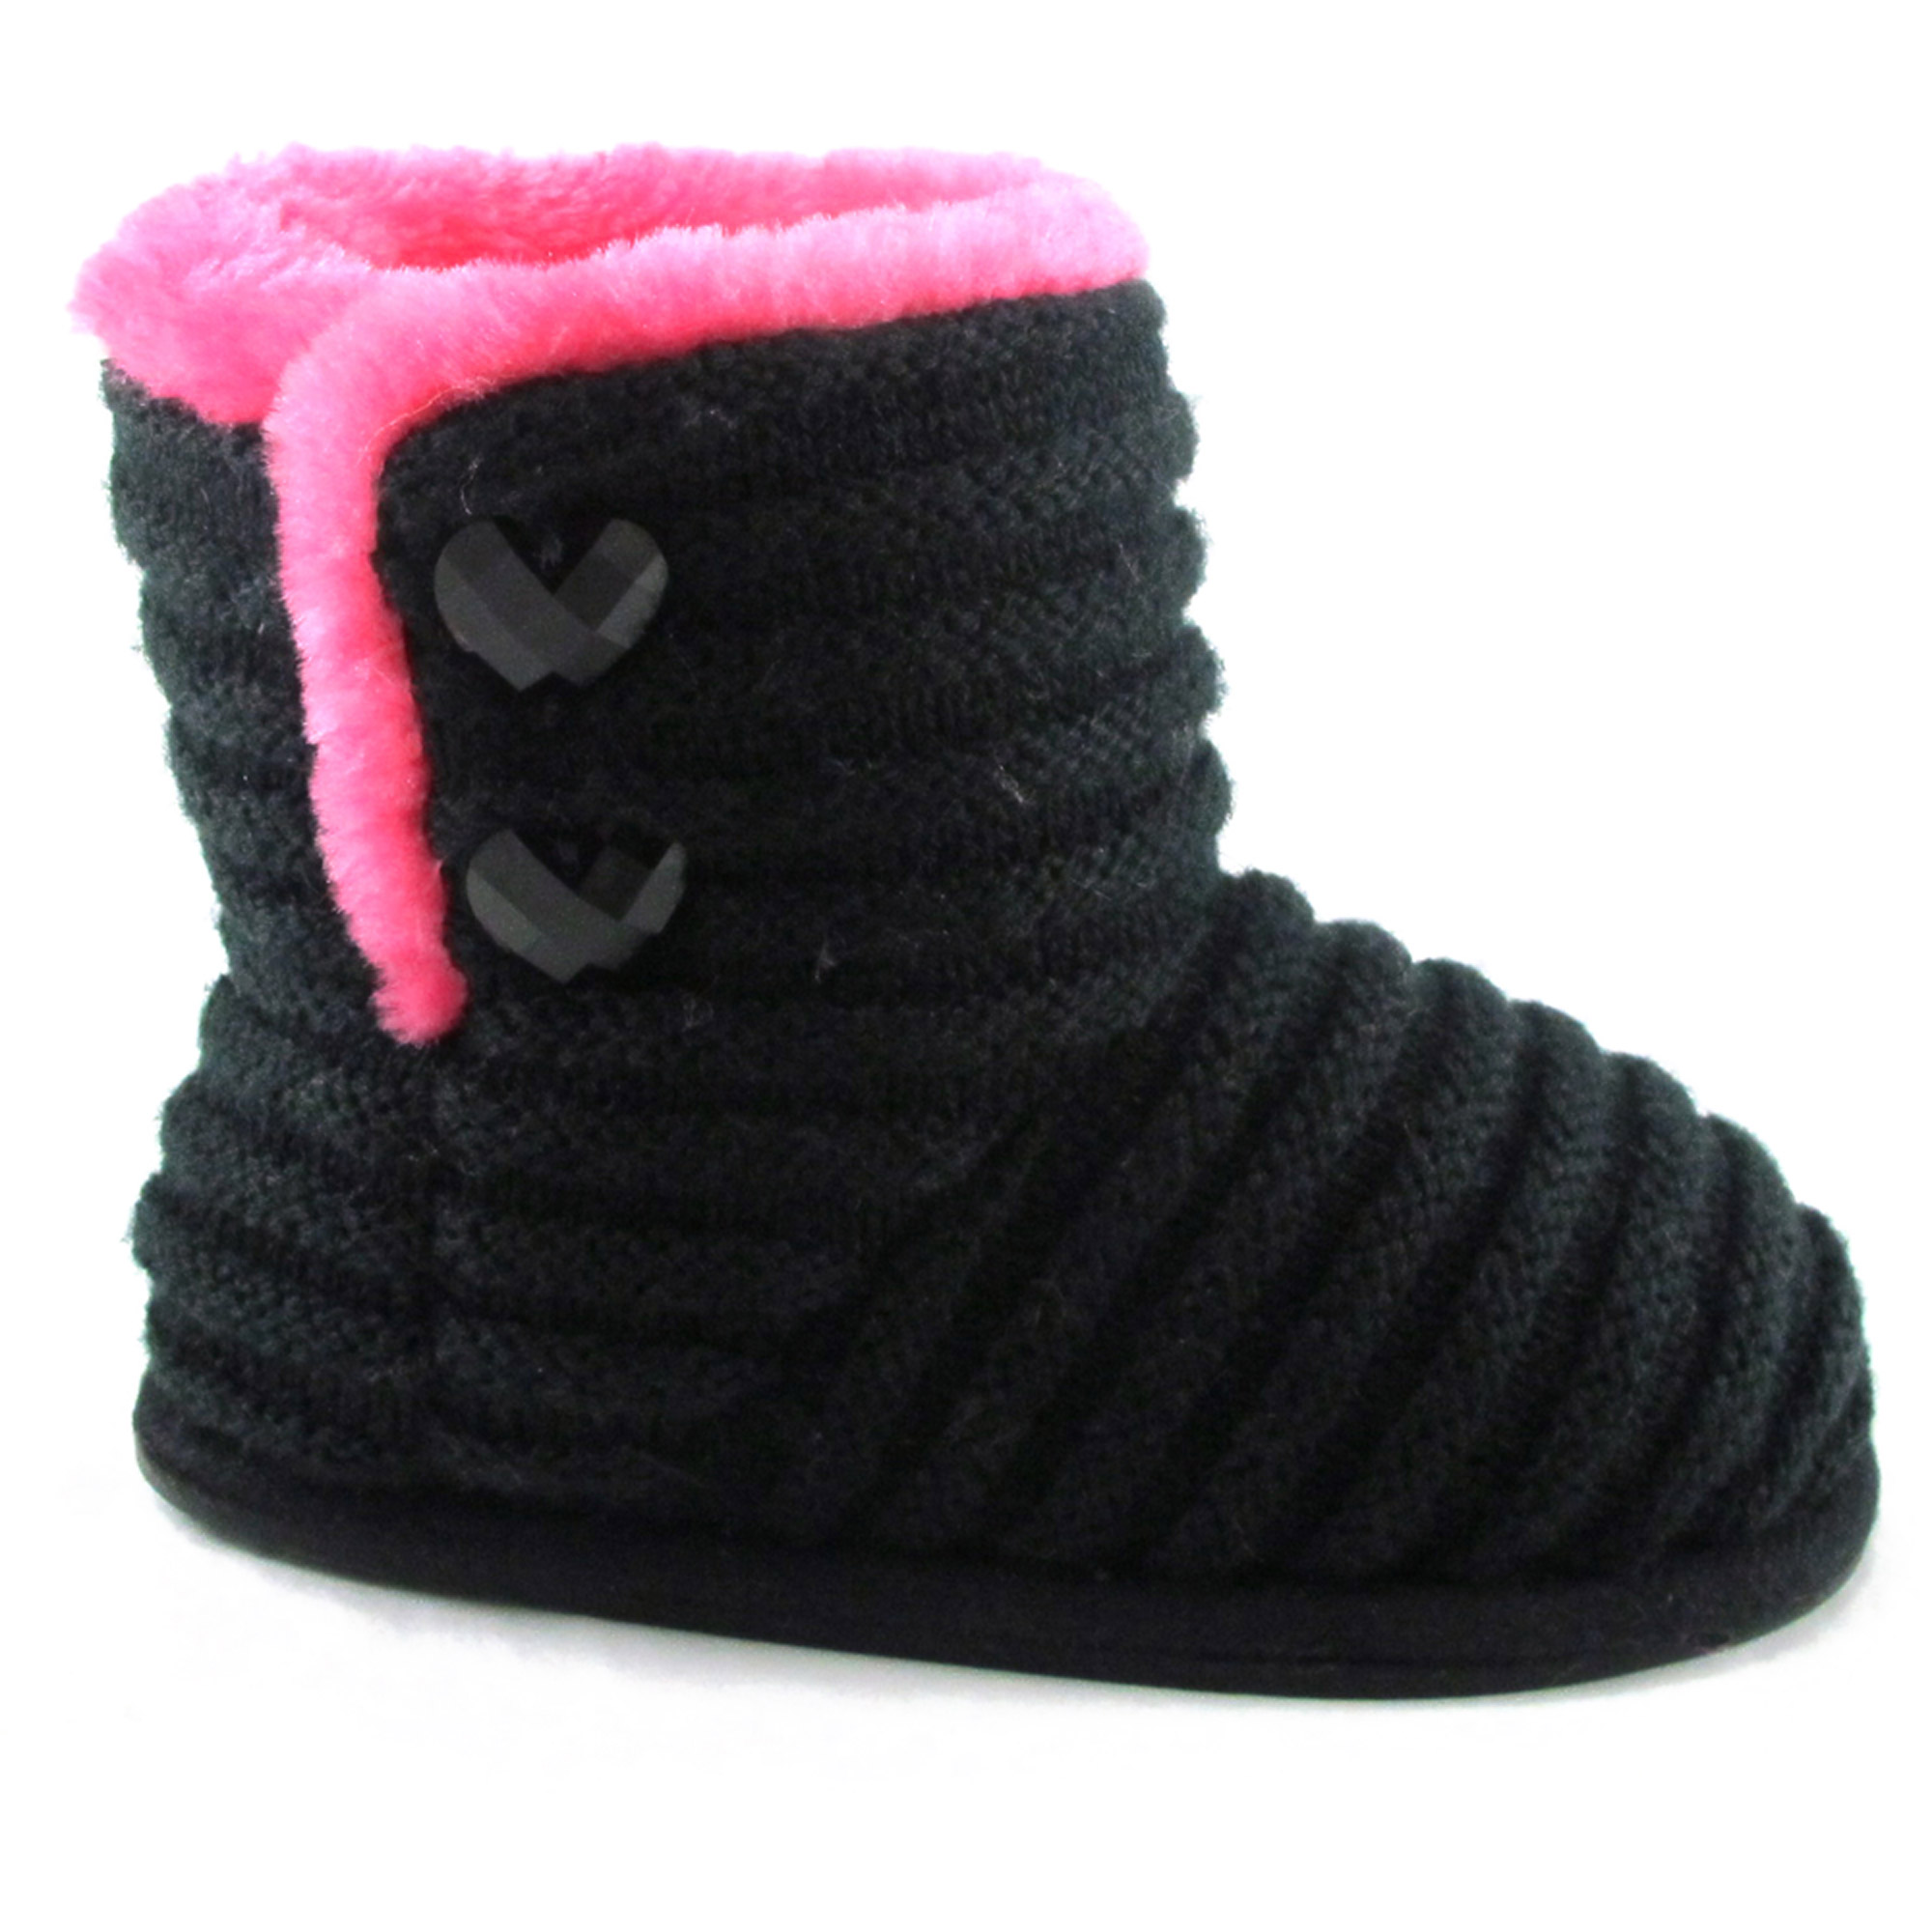 Toddler Girl's Striped Knit Boot